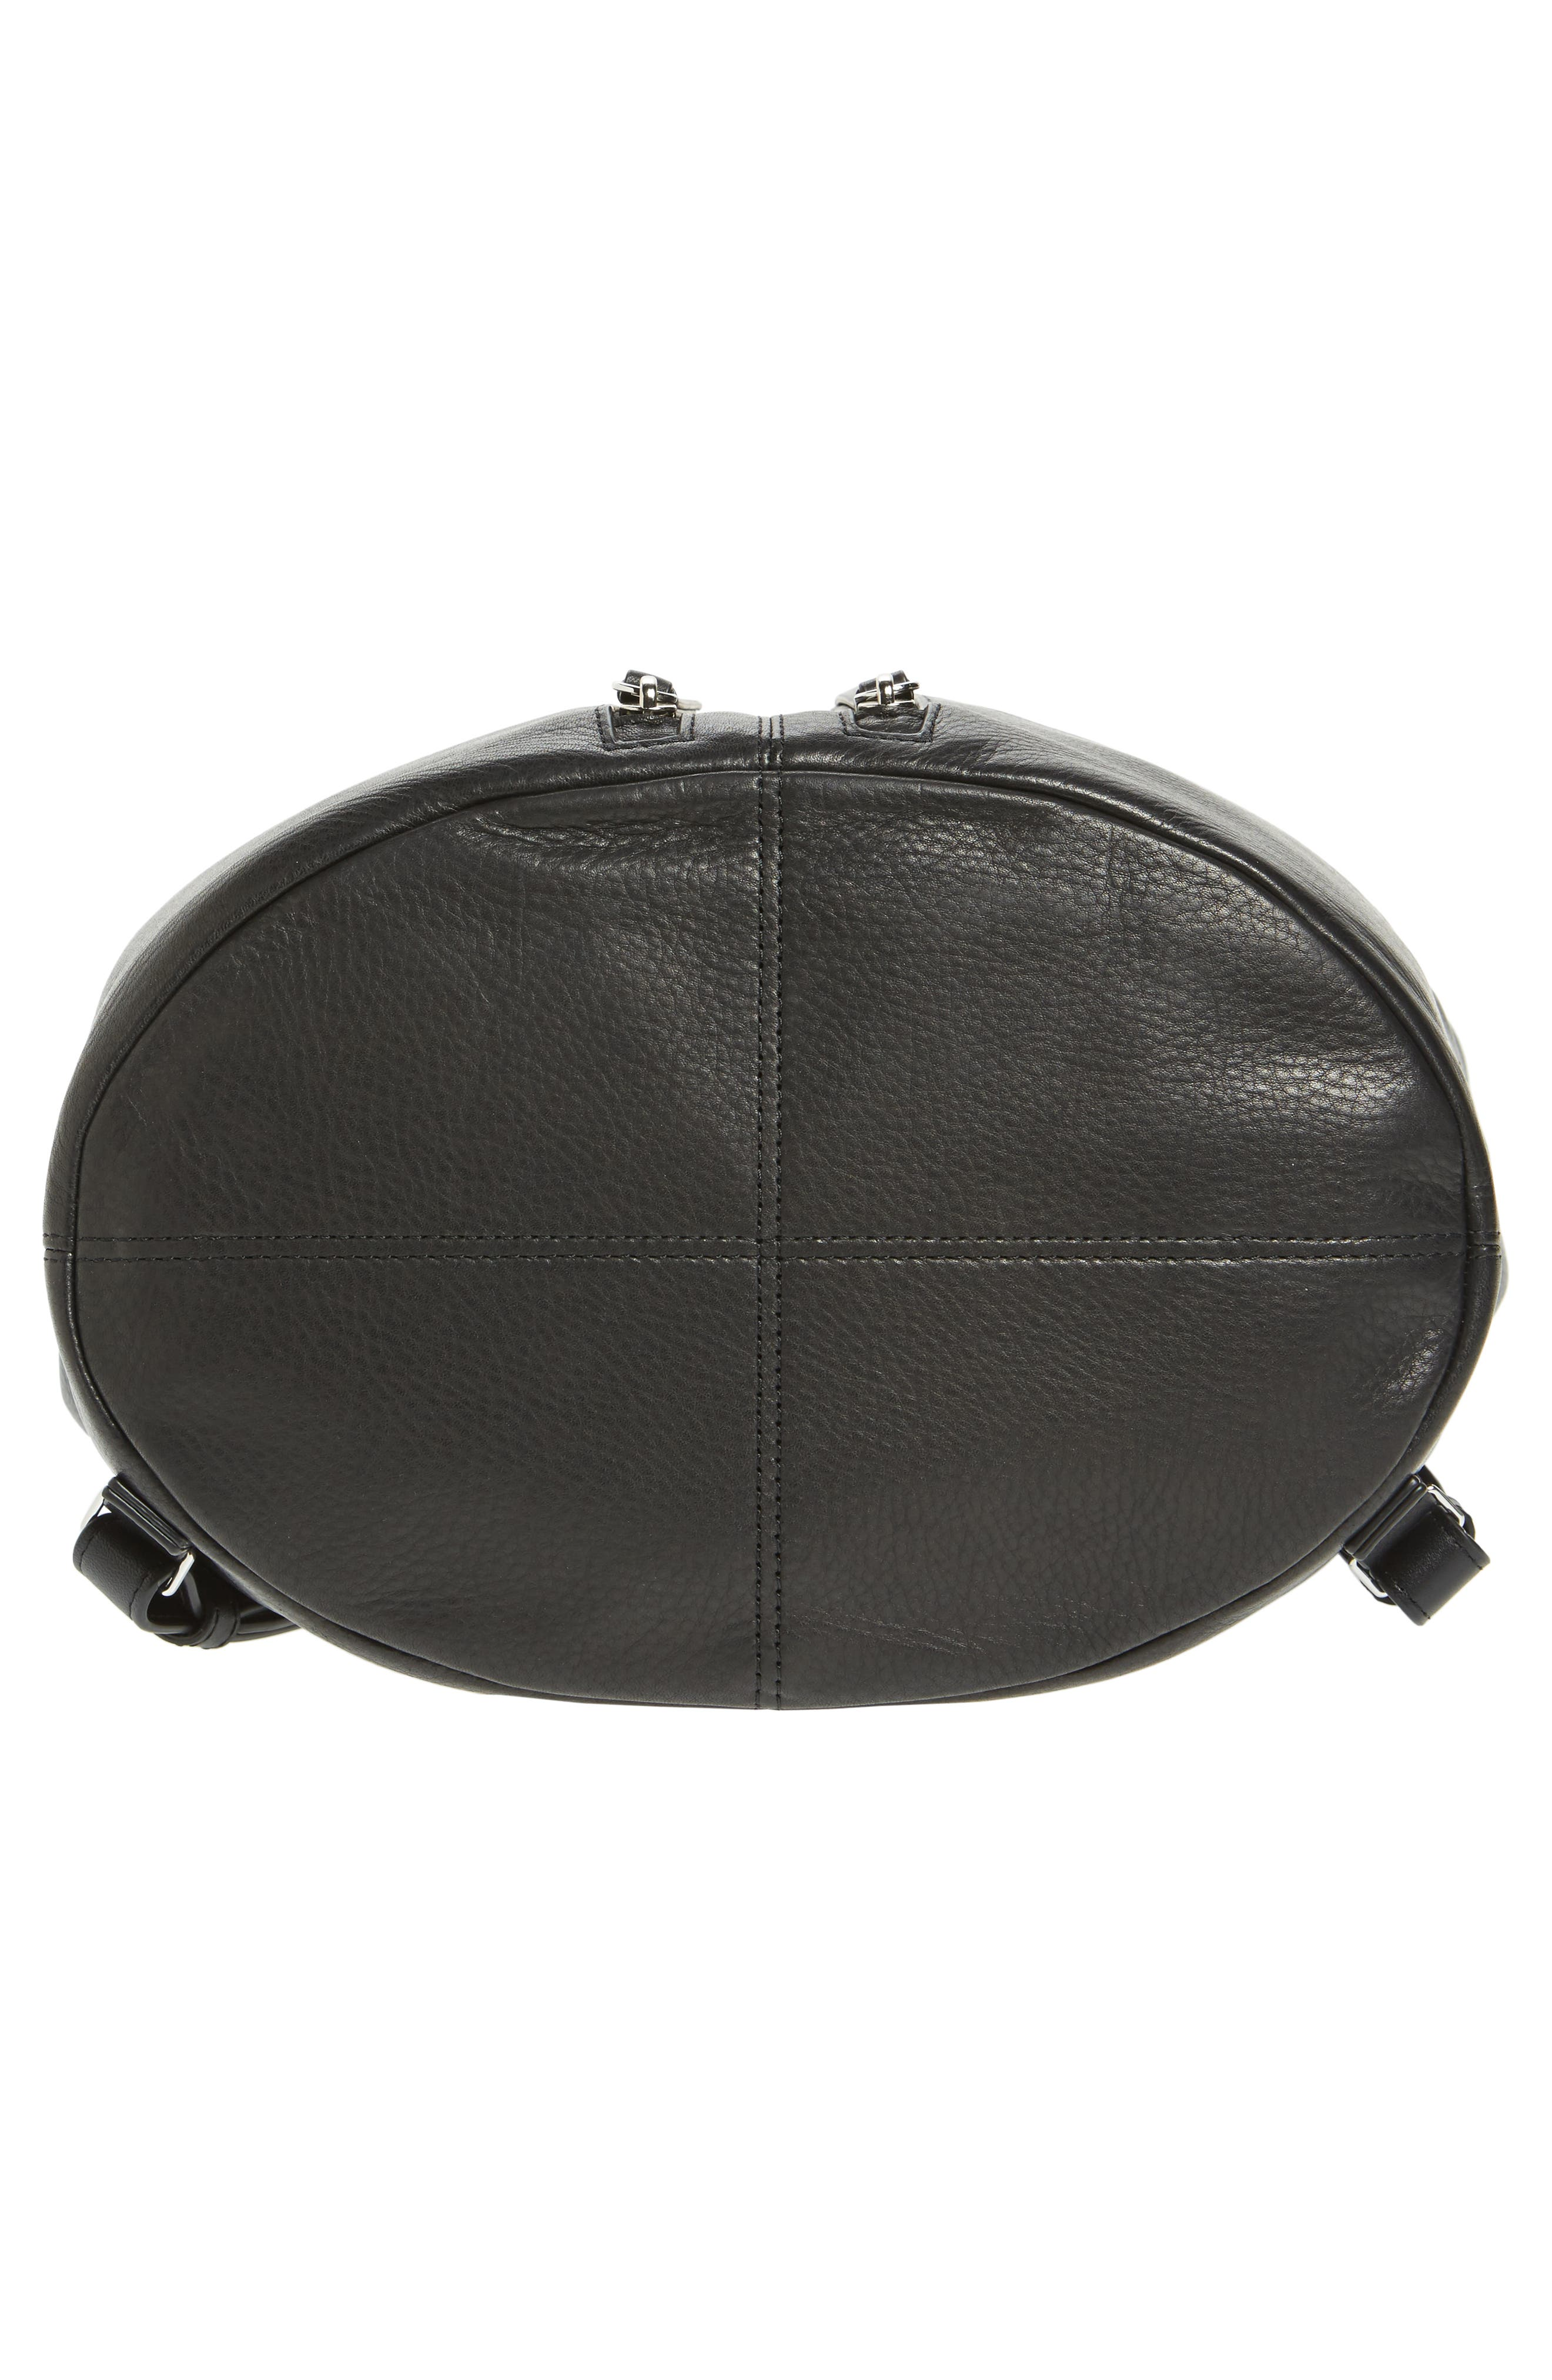 Fetch Leather Backpack,                             Alternate thumbnail 6, color,                             Black